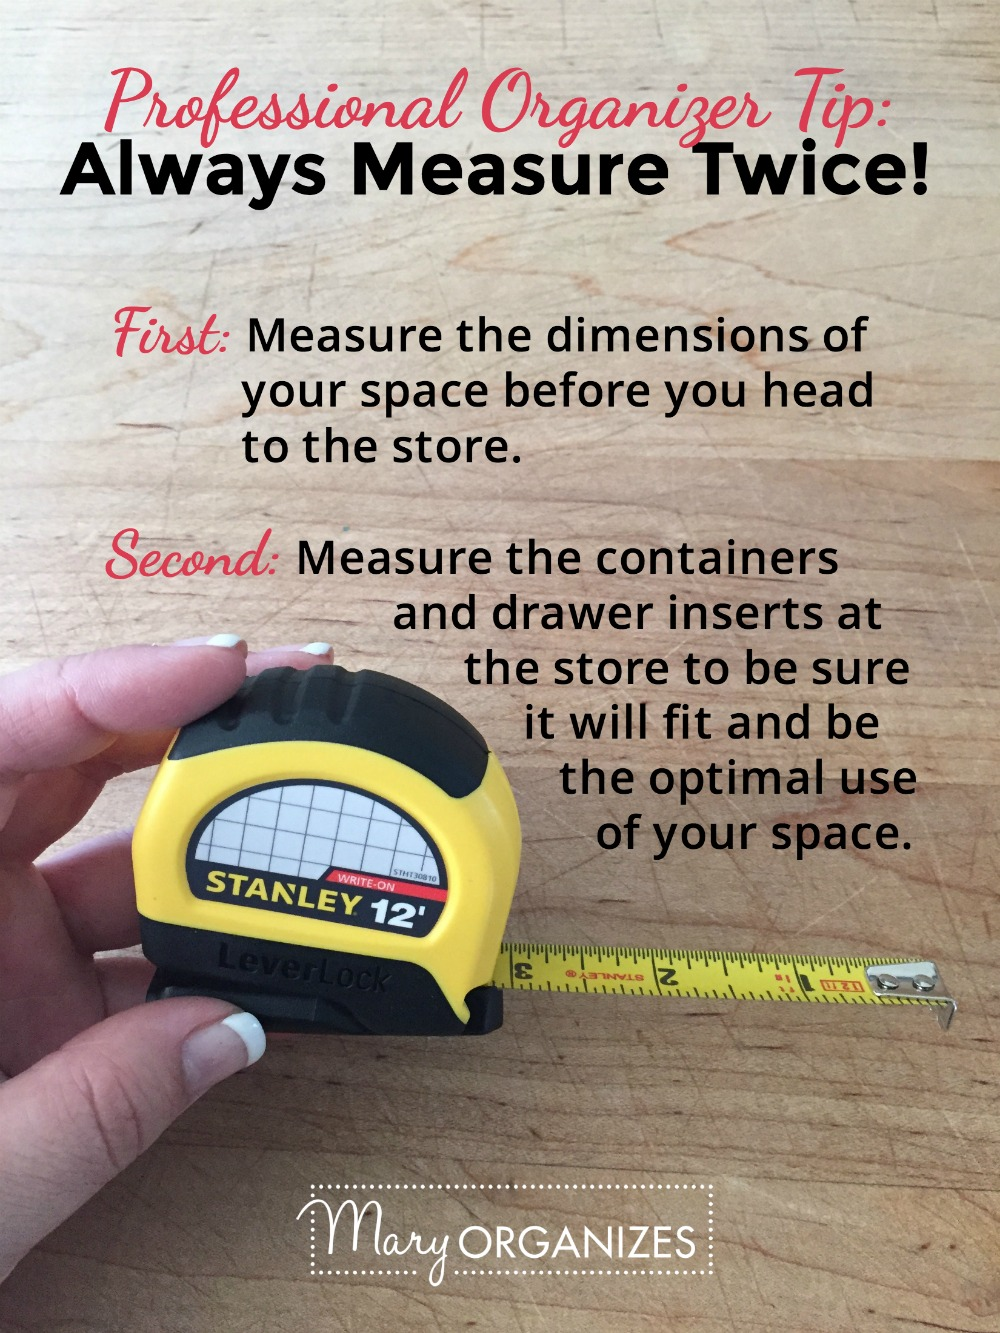 Professional Organizer Tip - Always Measure Twice -v